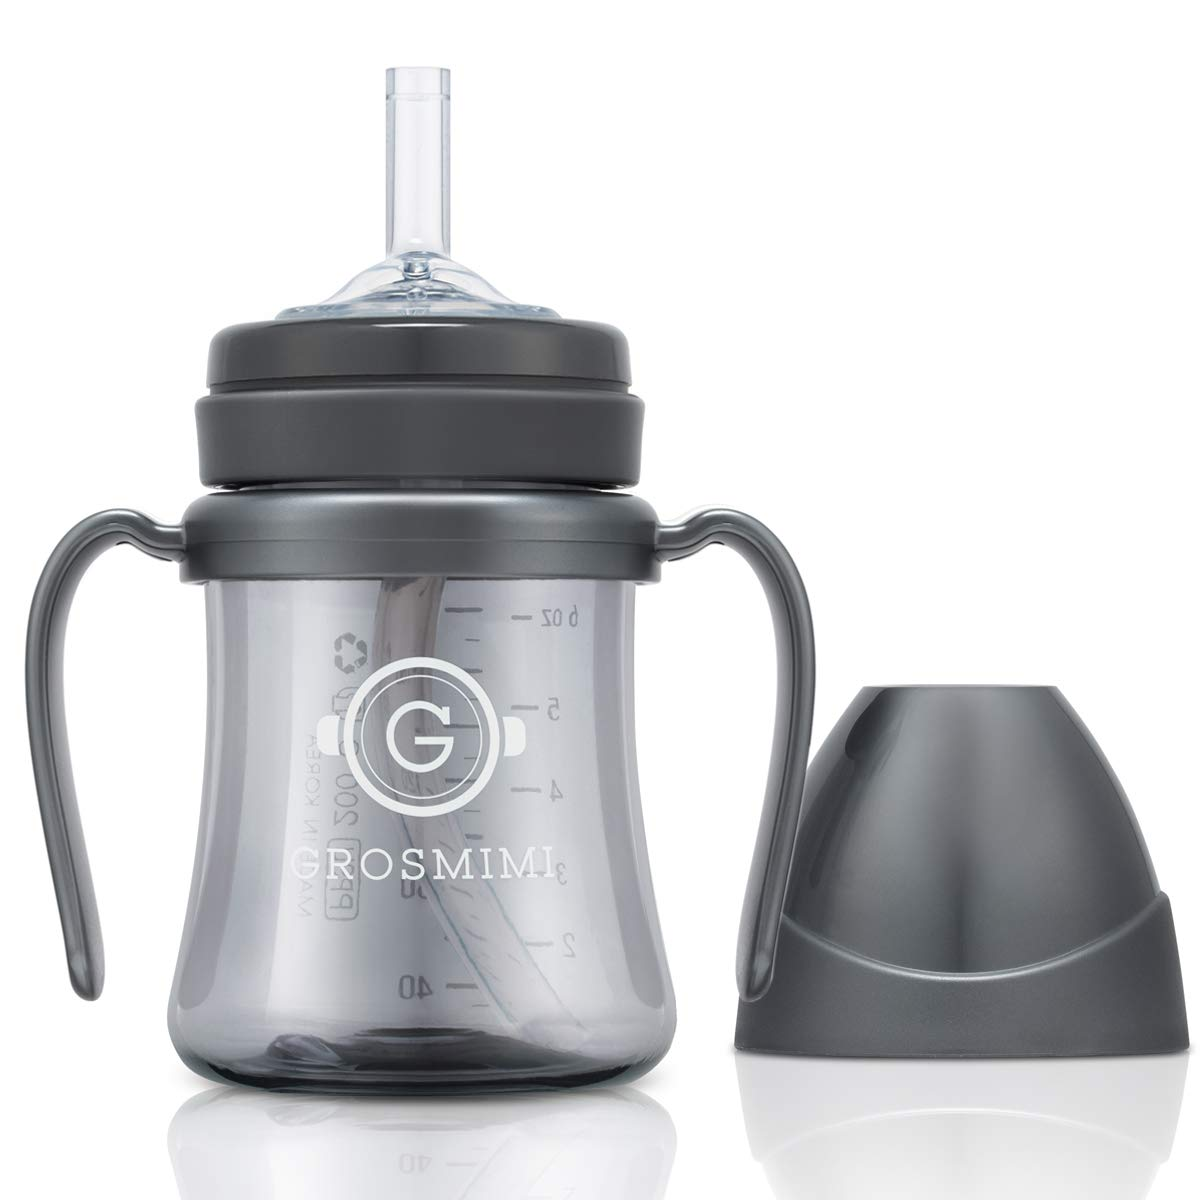 Grosmimi Spill Proof no Spill Magic Sippy Cup with Straw with Handle for Baby and Toddlers, Customizable, PPSU, BPA Free 6 oz (Charcoal)